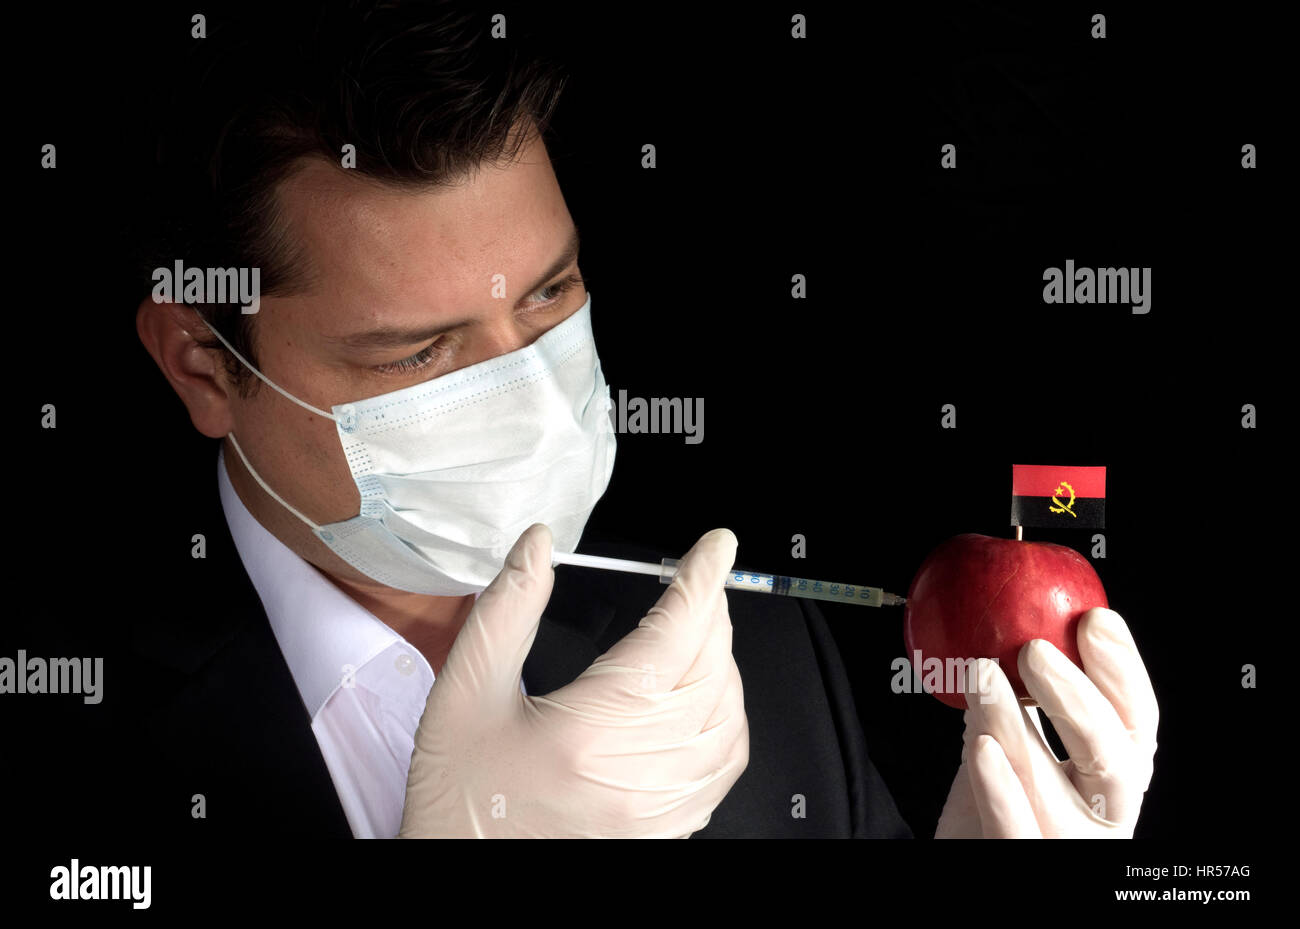 Young businessman injecting chemicals into an apple with Angolan flag on black background Stock Photo